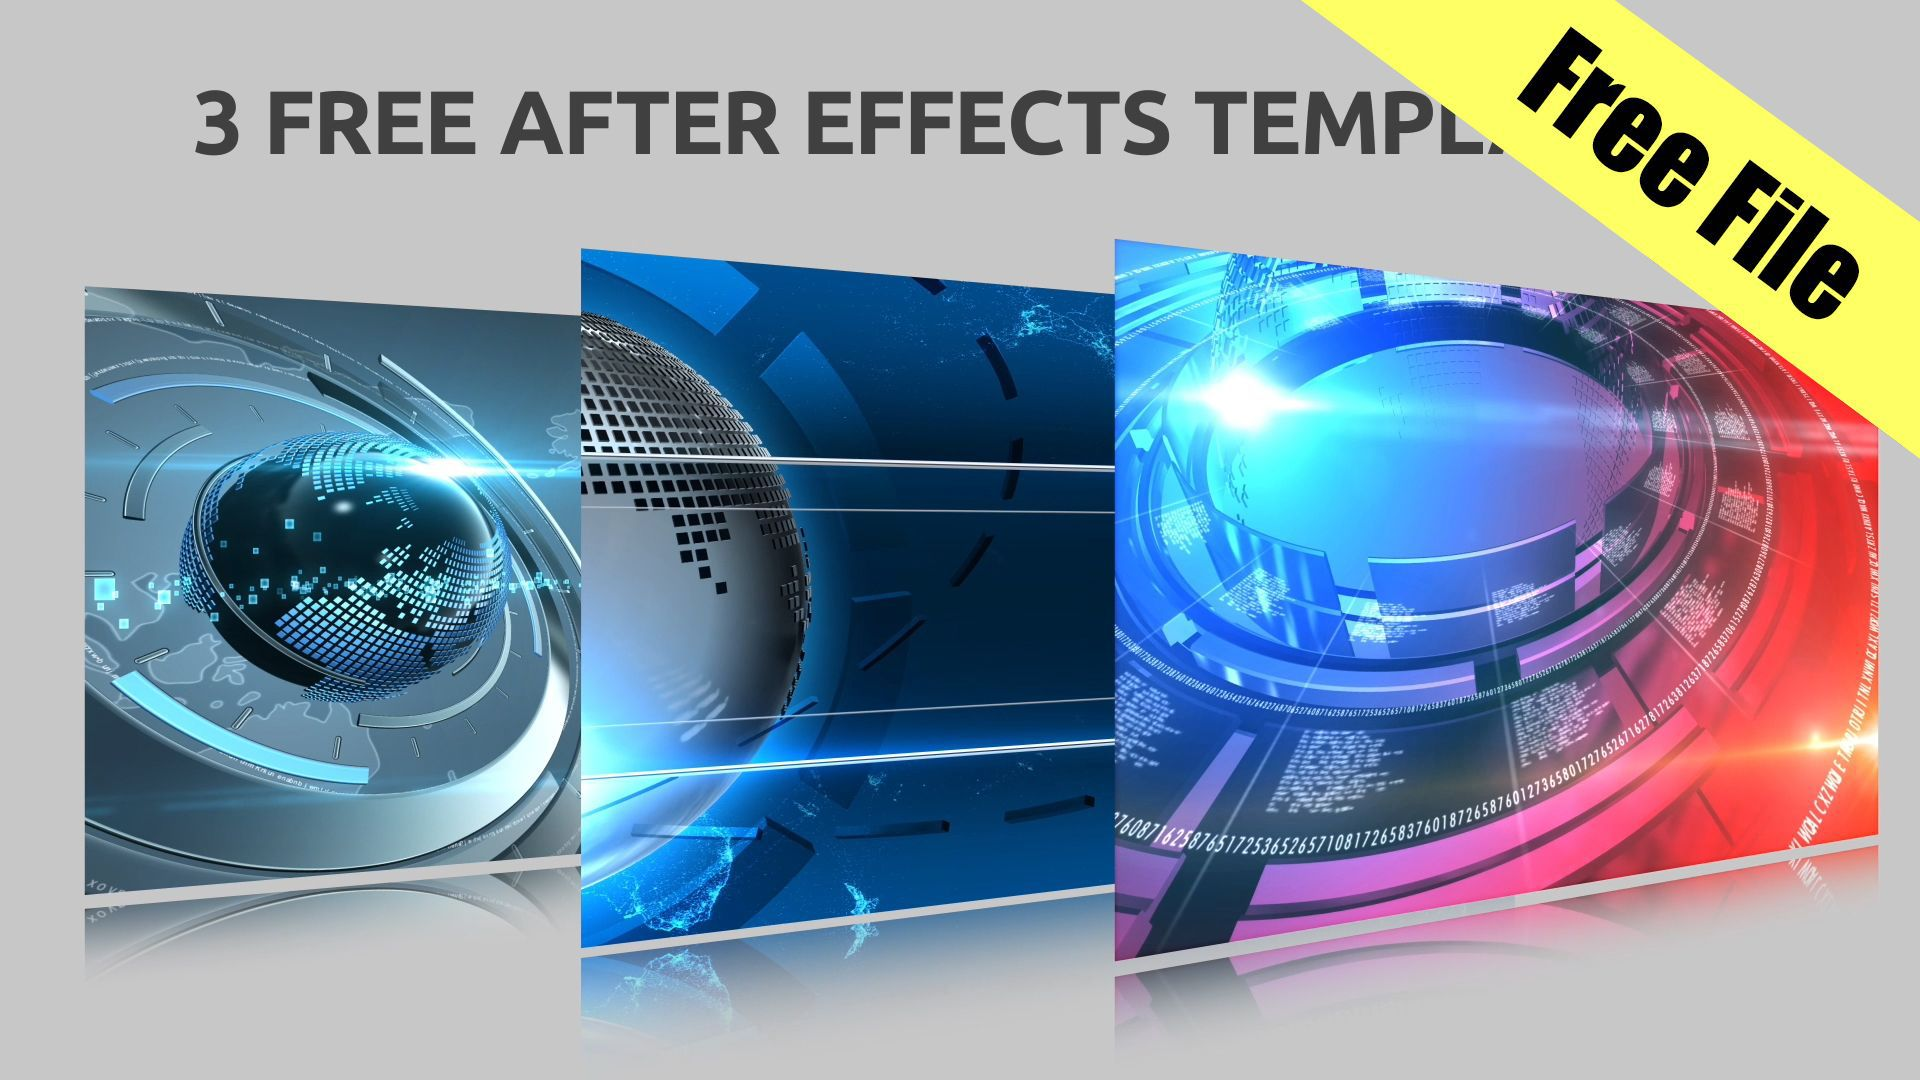 007 Unique Adobe After Effect Free Template Photo  Templates Birthday Download SlideshowFull